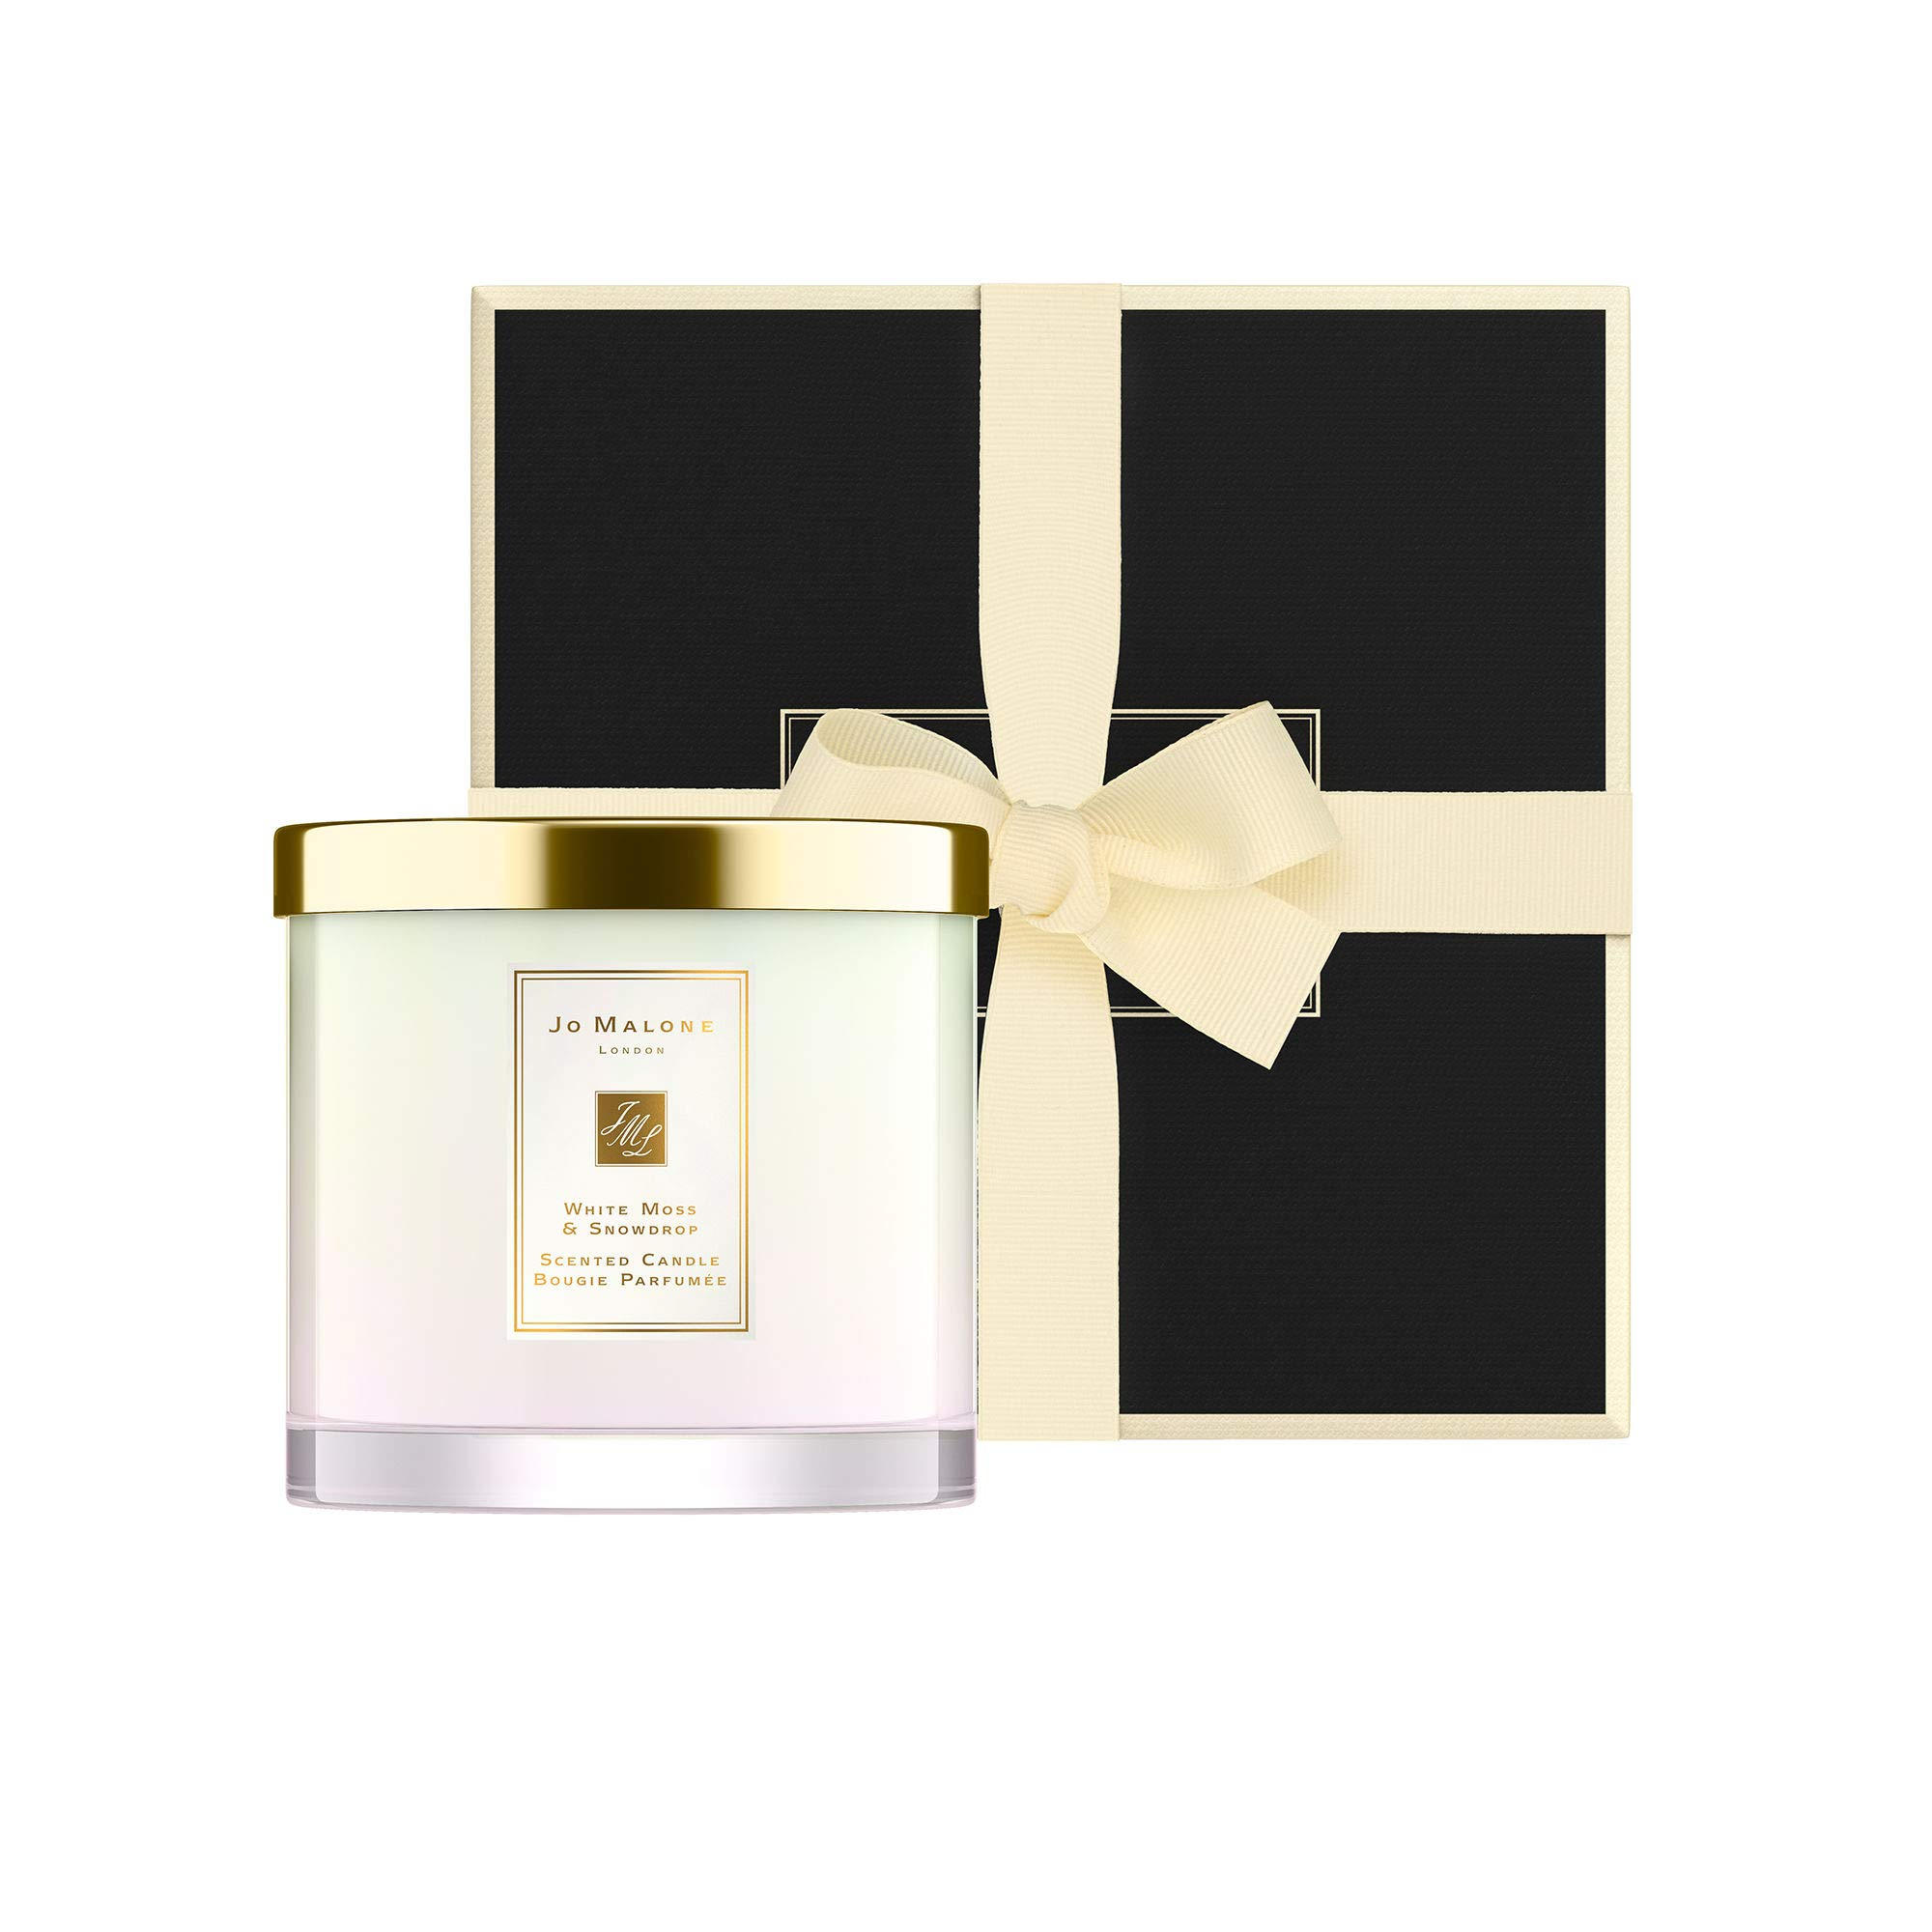 JO MALONE LONDON WHITE MOSS & SNOWDROP DELUXE CANDLE 600G LIMITED EDITION